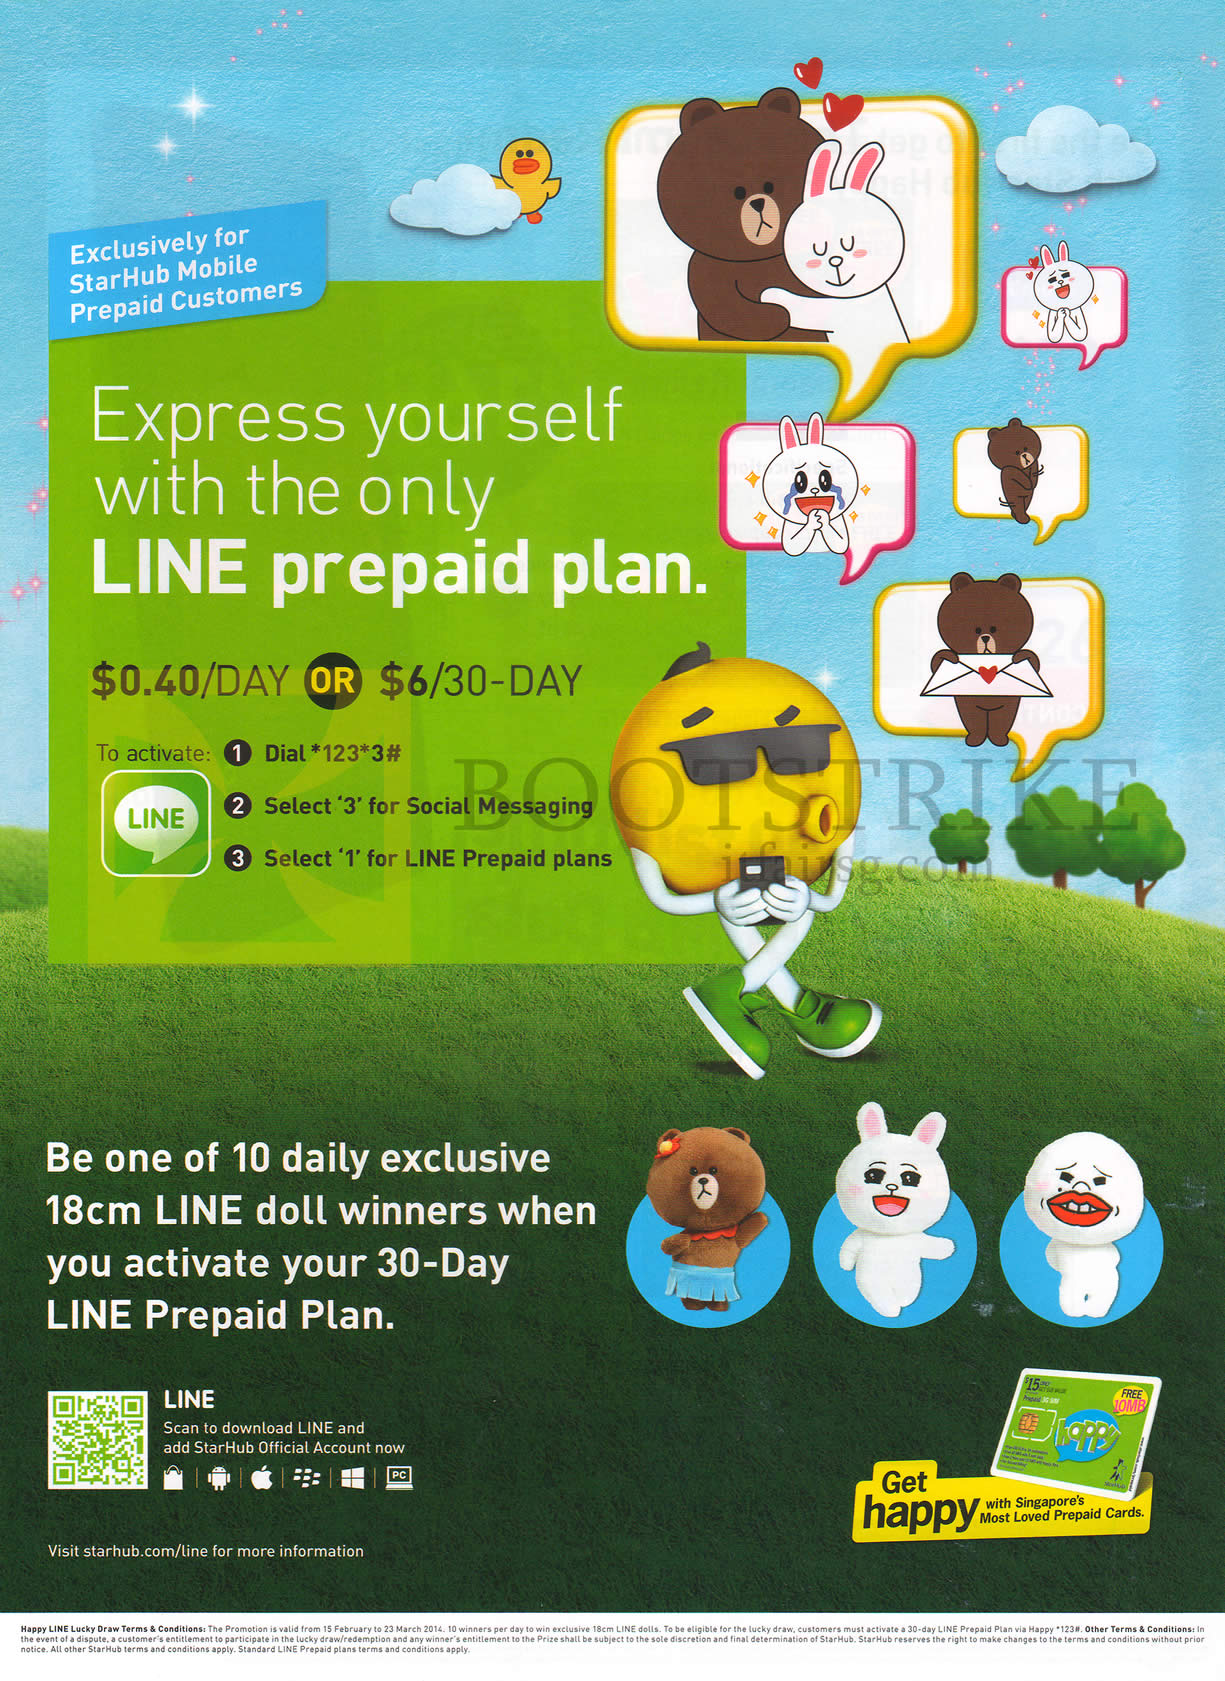 IT SHOW 2014 price list image brochure of Starhub Mobile Prepaid Line Plan